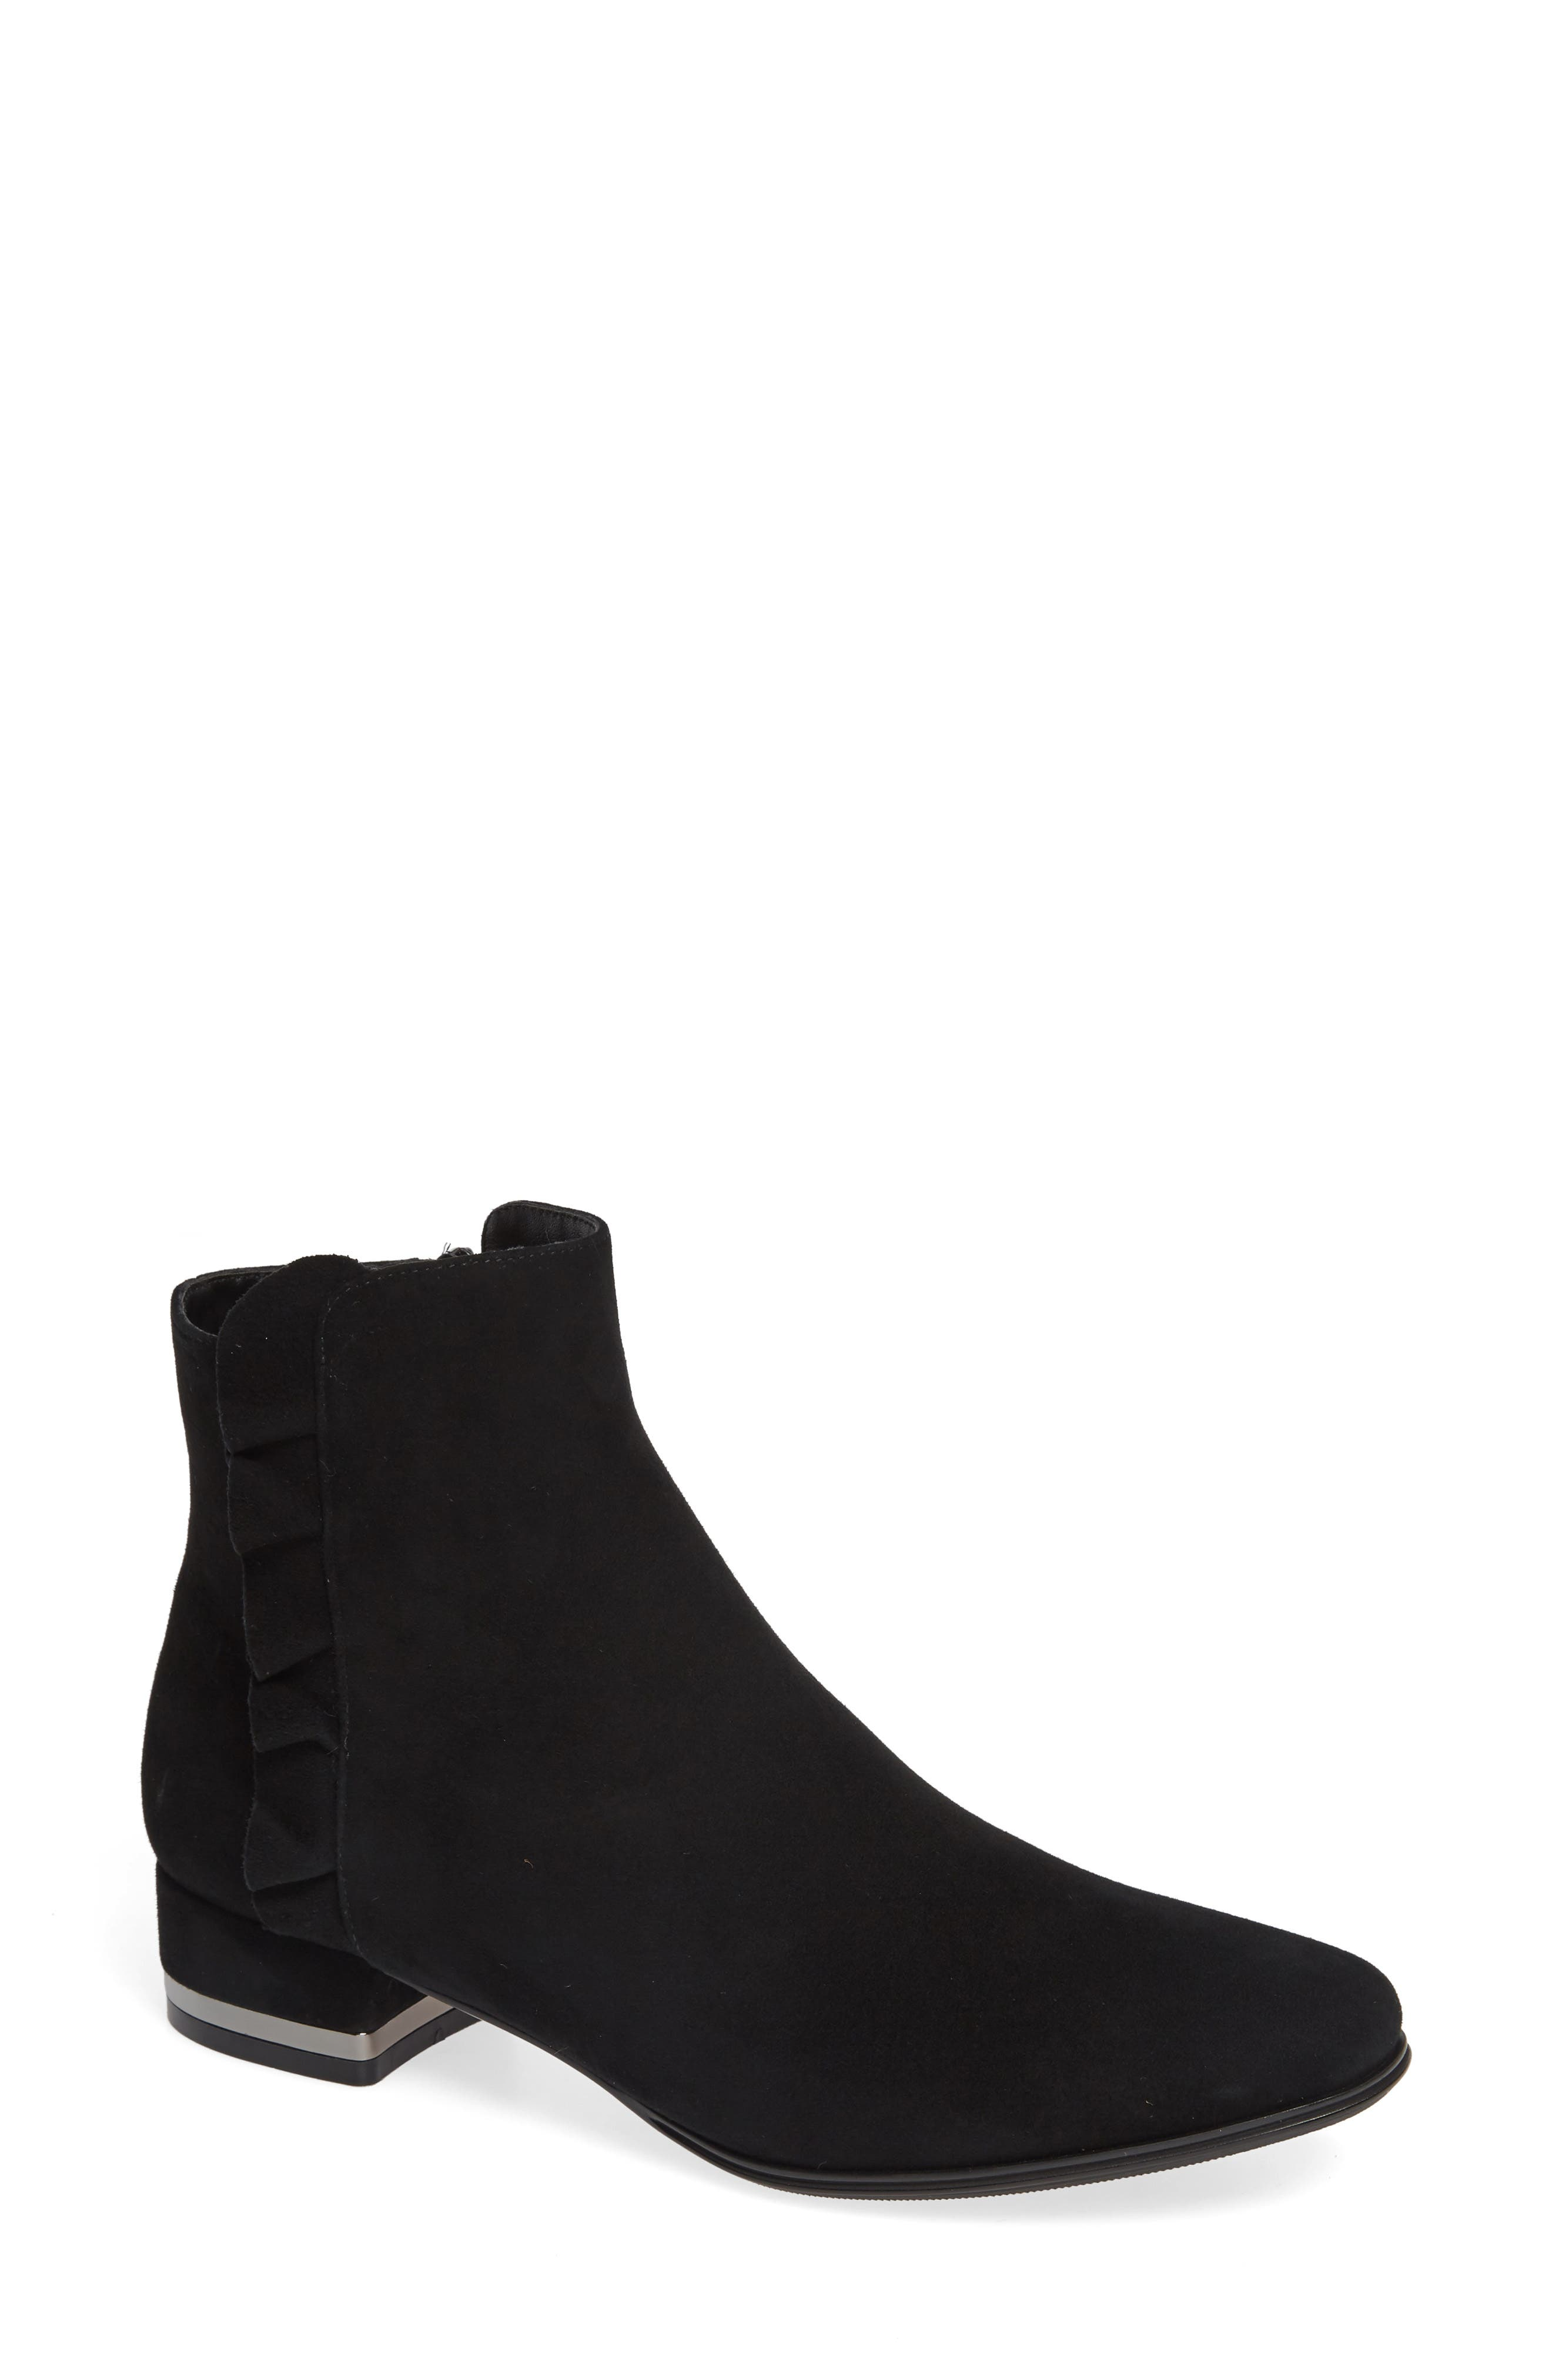 Amoke Bootie,                             Main thumbnail 1, color,                             BLACK SUEDE